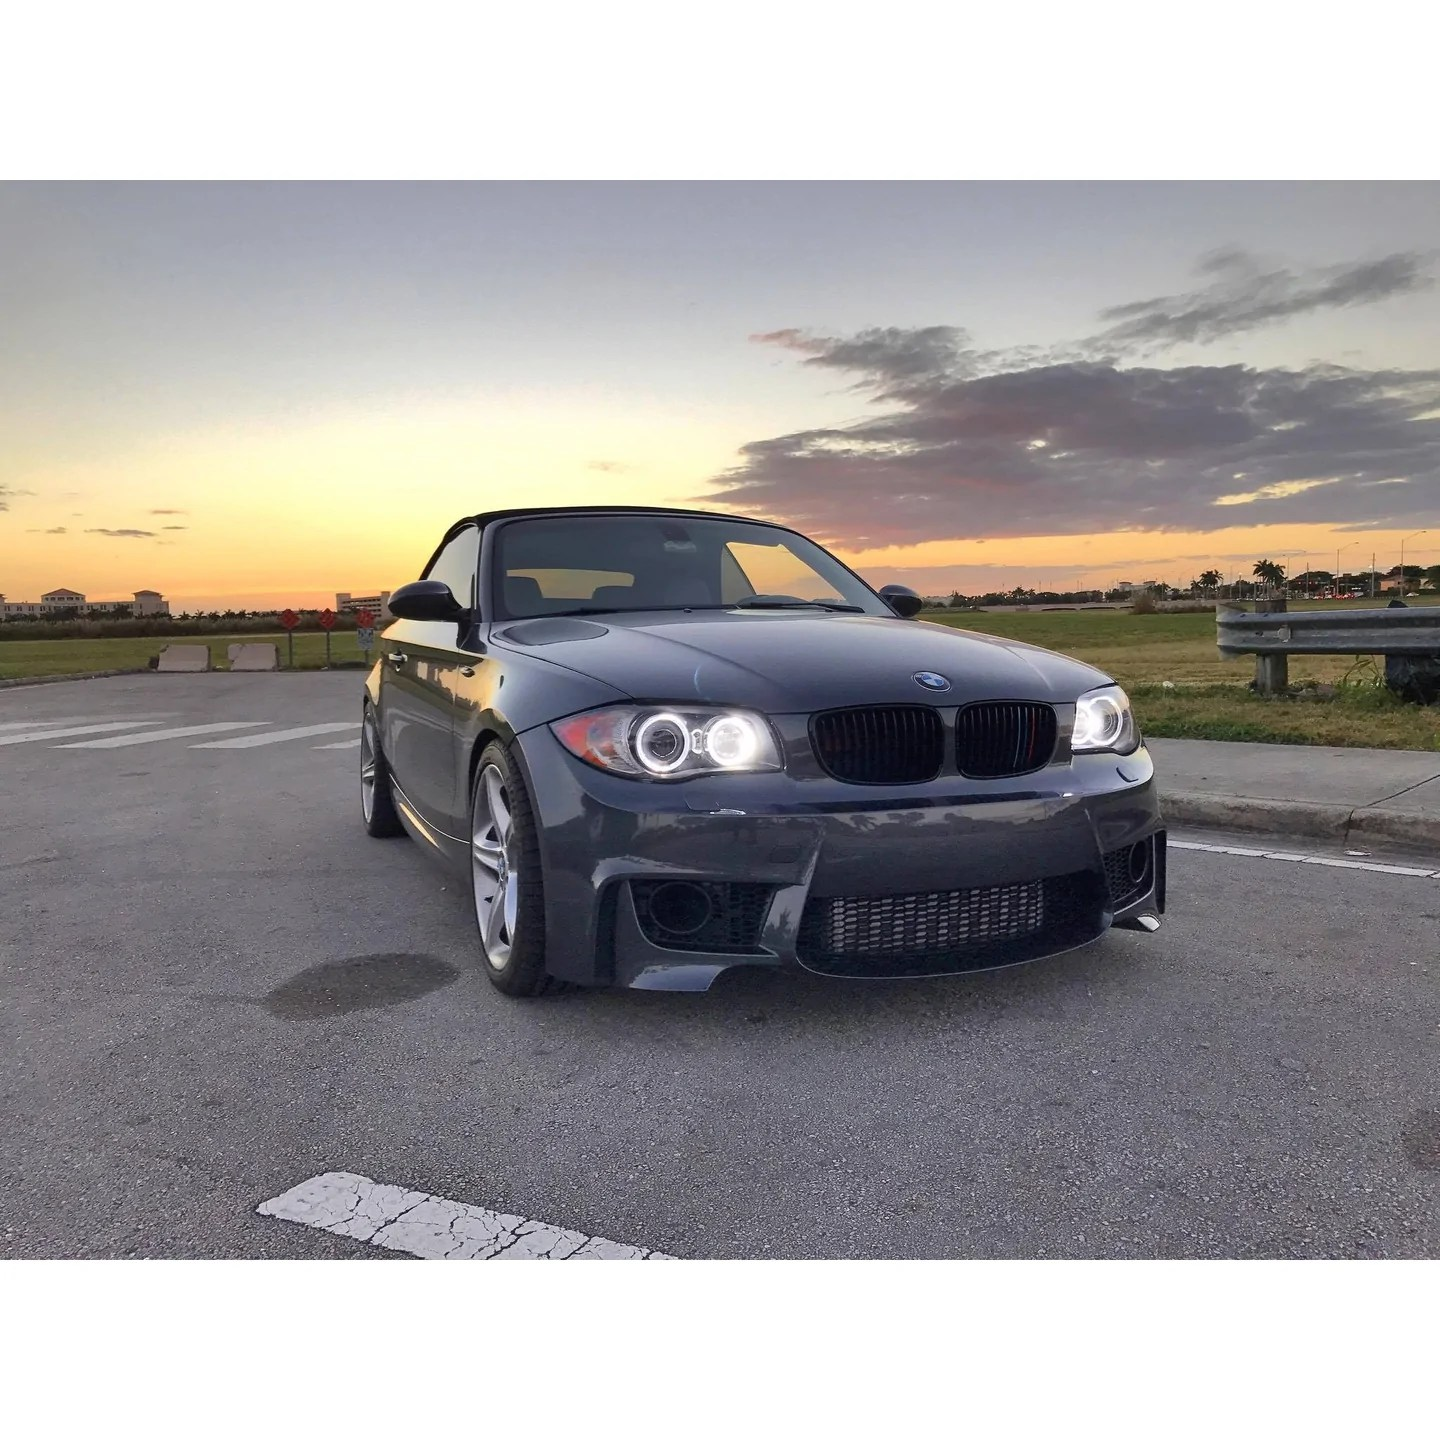 small resolution of bmw e82 1m style front bumper aeuroplug